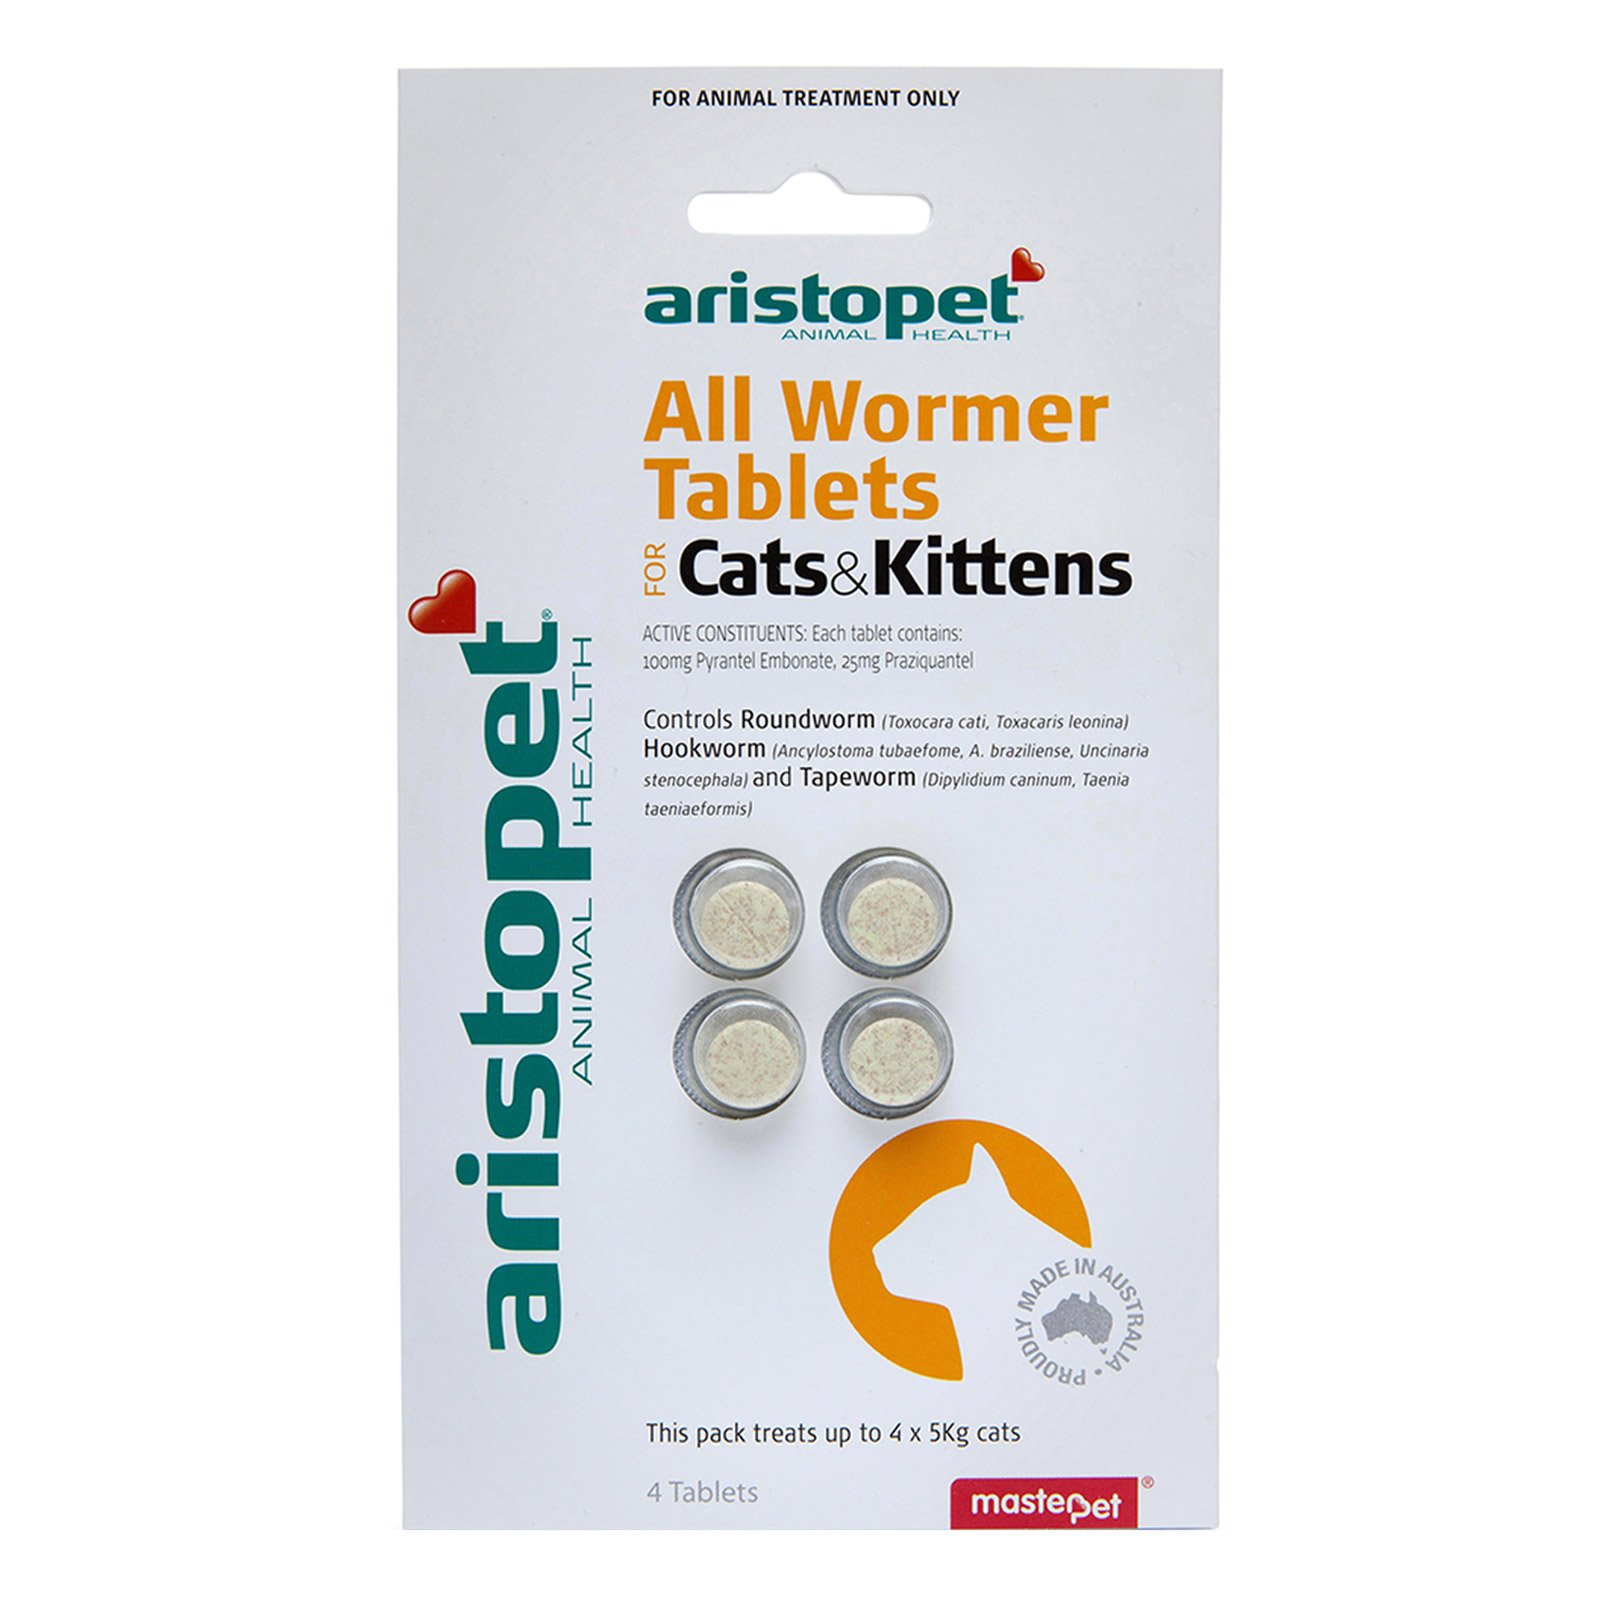 Aristopet All Wormer Tablets